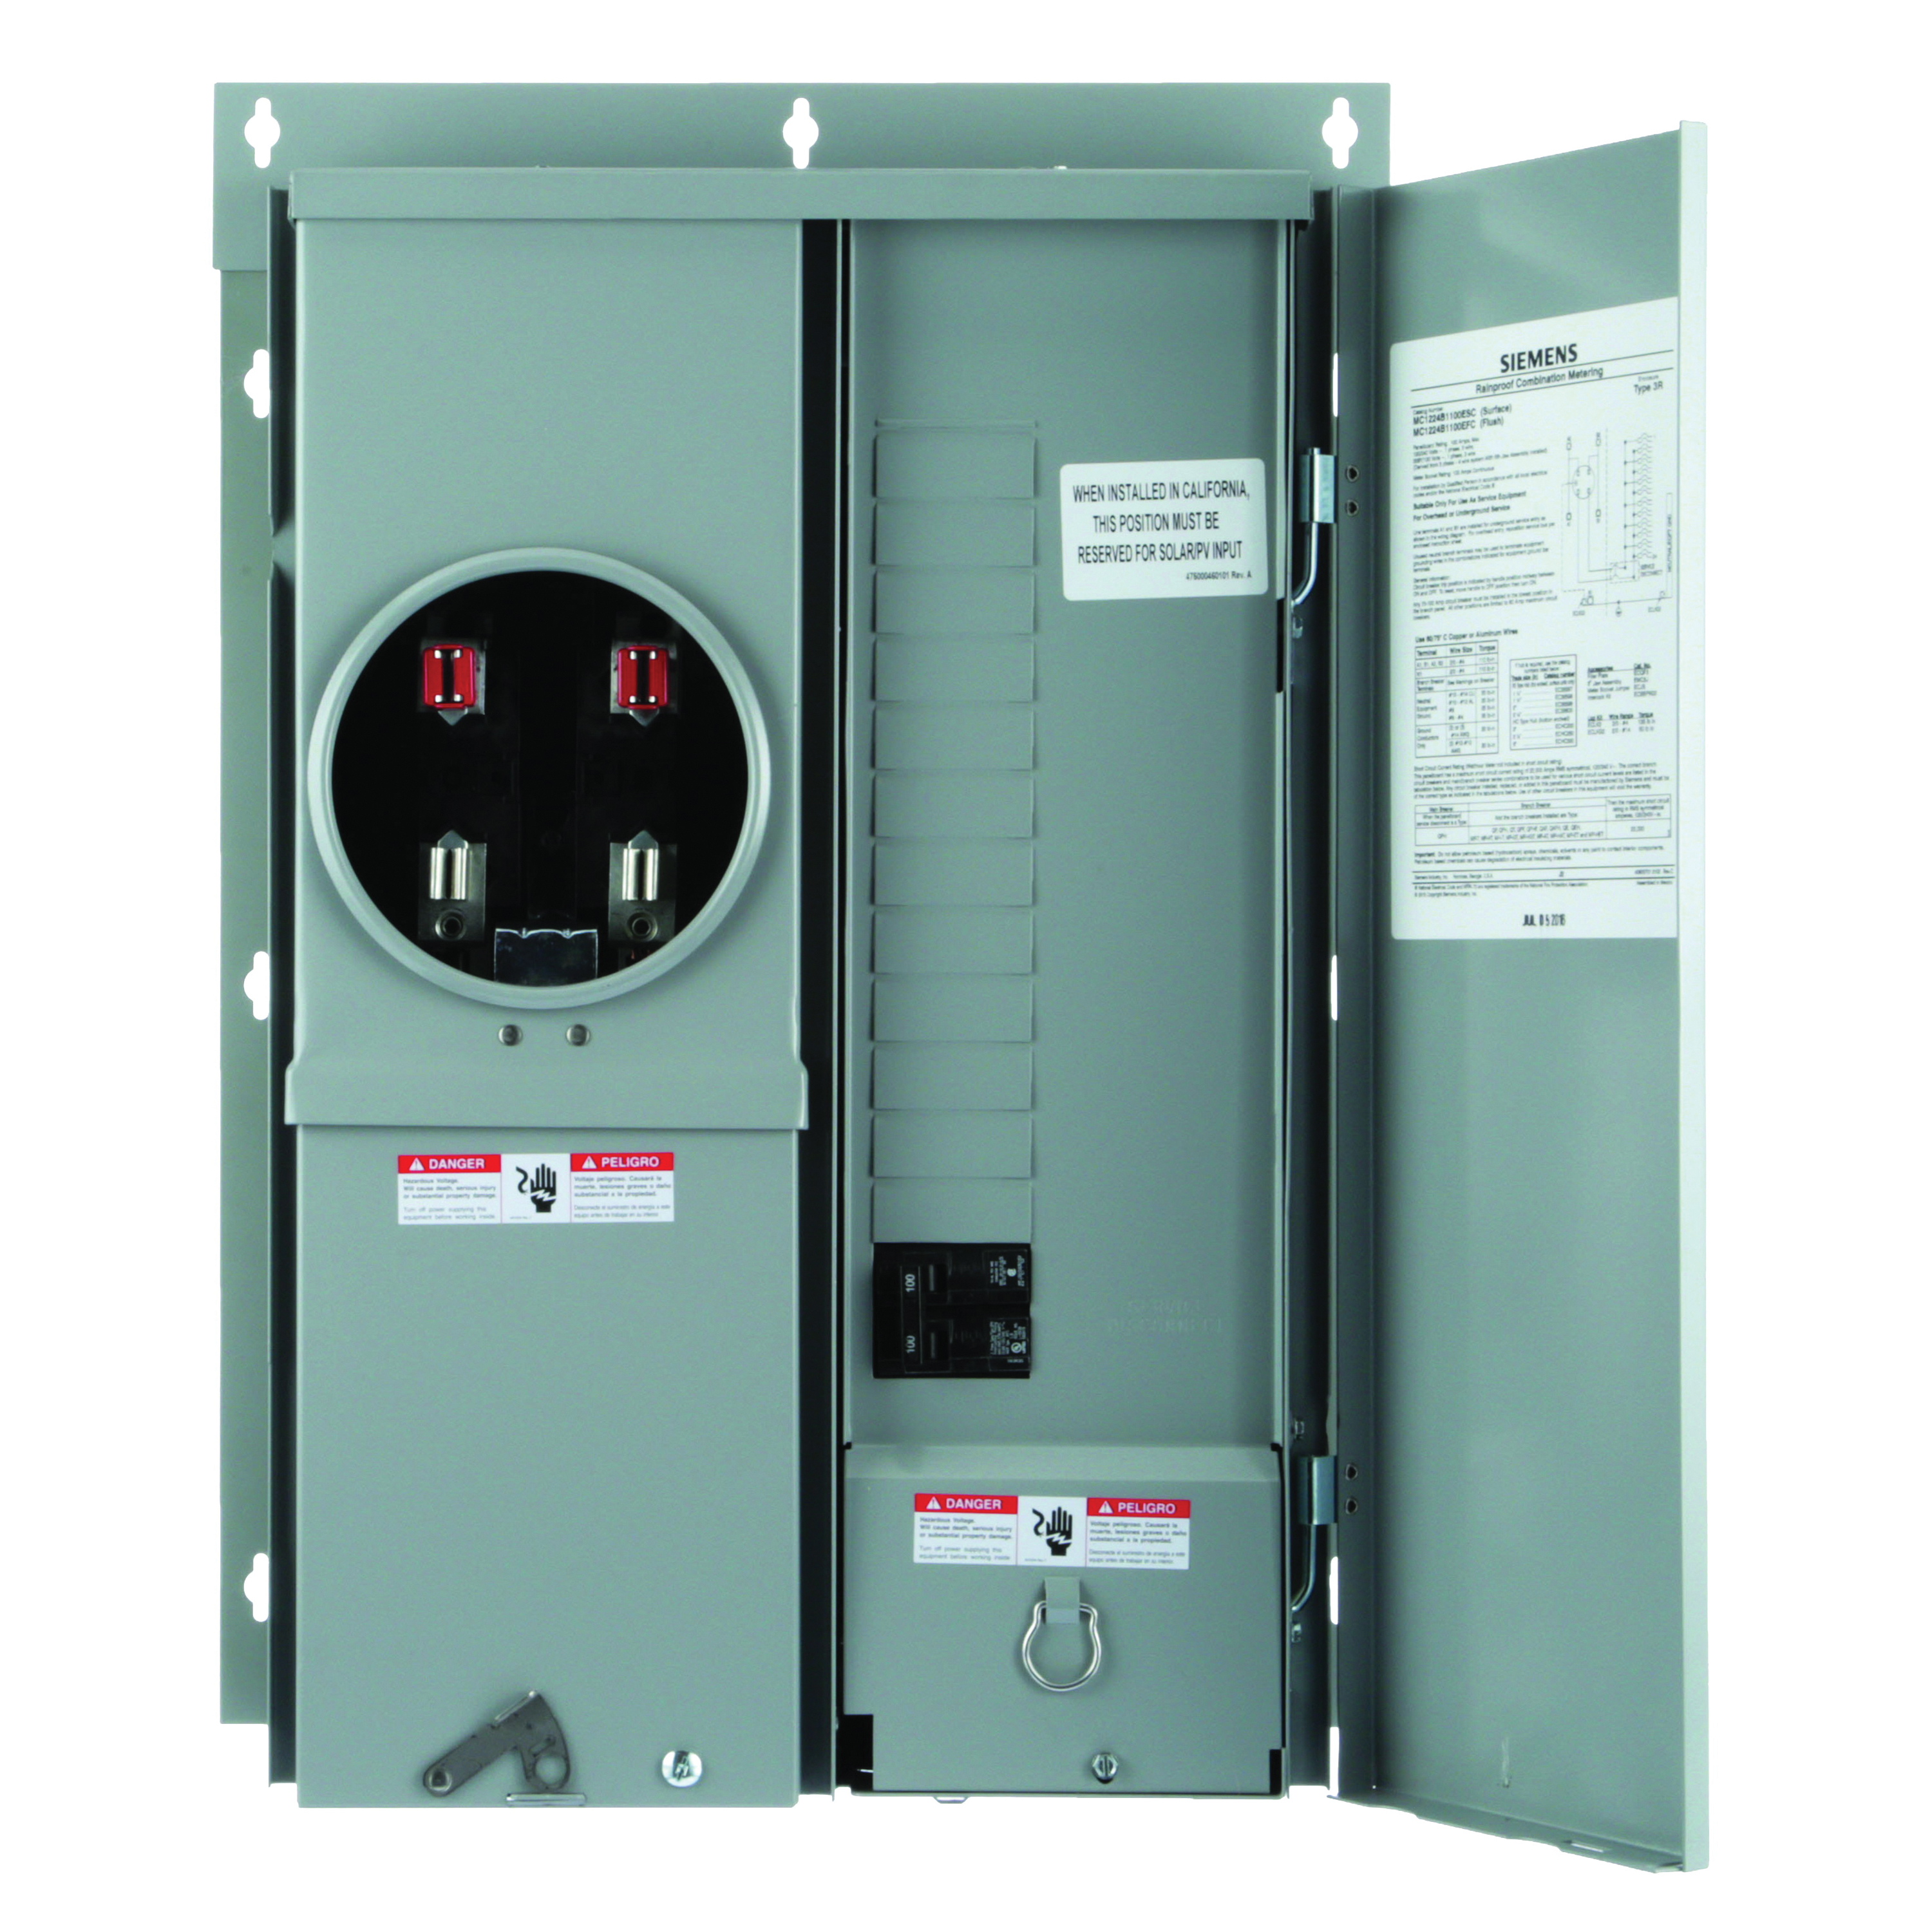 Picture of Siemens MC1224B1100EFC Meter Load Center Combination, 100 A, 12-Space, 4-Jaw, 24-Circuit, NEMA 3R Enclosure